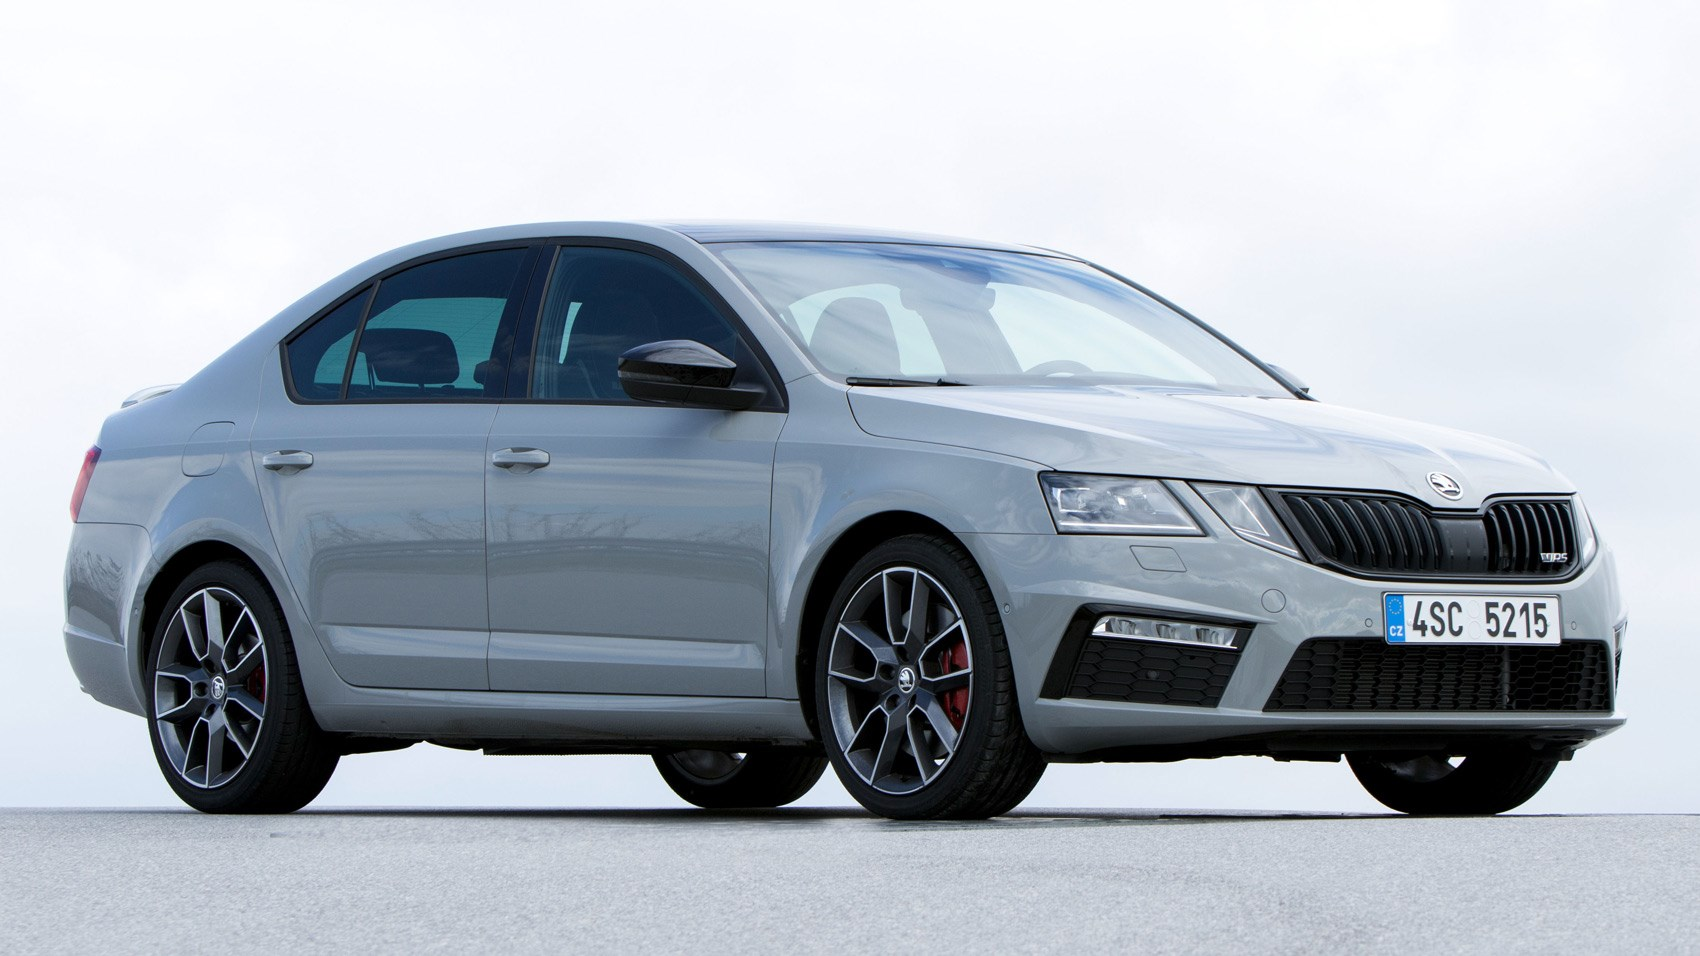 skoda octavia vrs 2017 review by car magazine. Black Bedroom Furniture Sets. Home Design Ideas